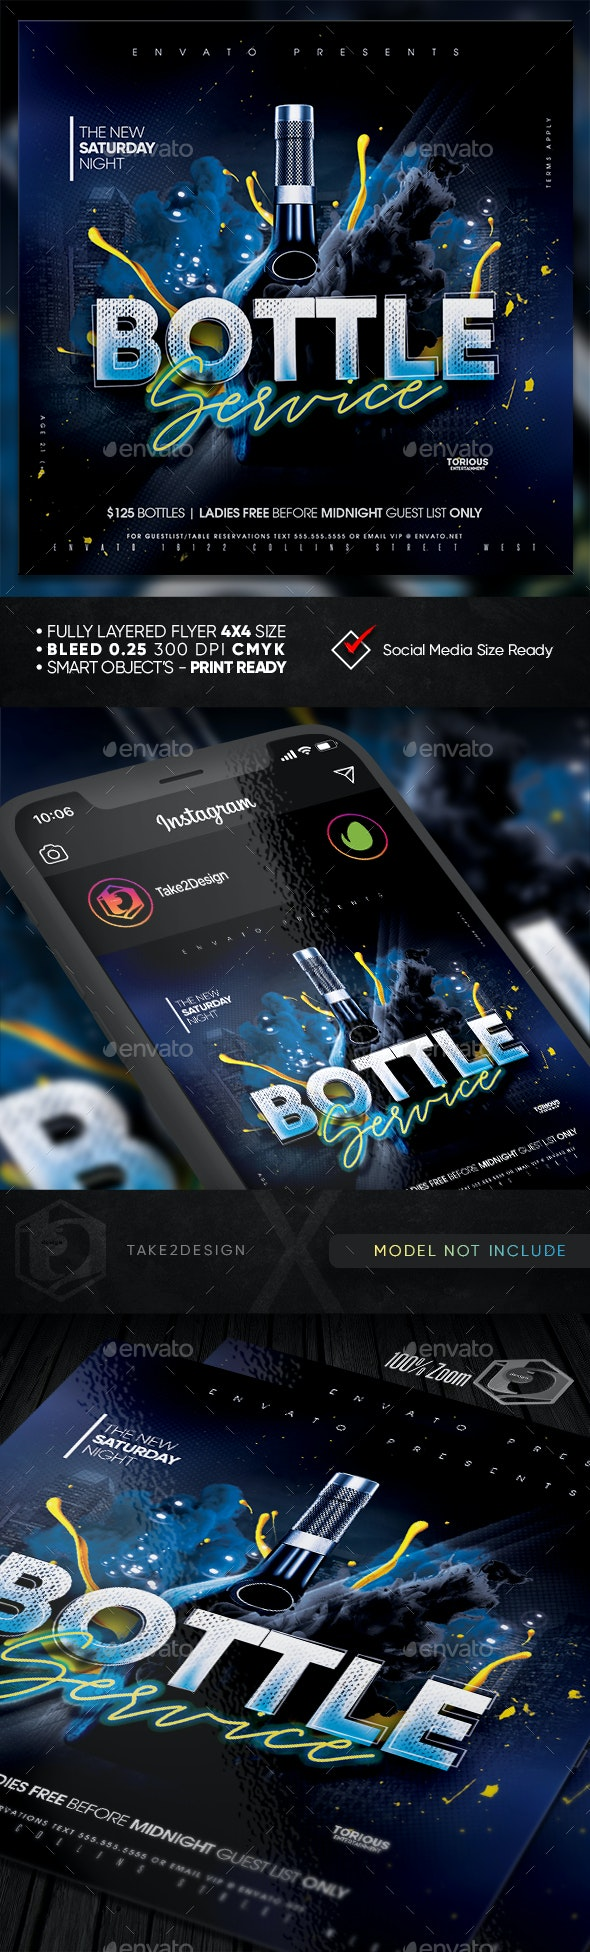 Bottle Service Flyer Template - Clubs & Parties Events